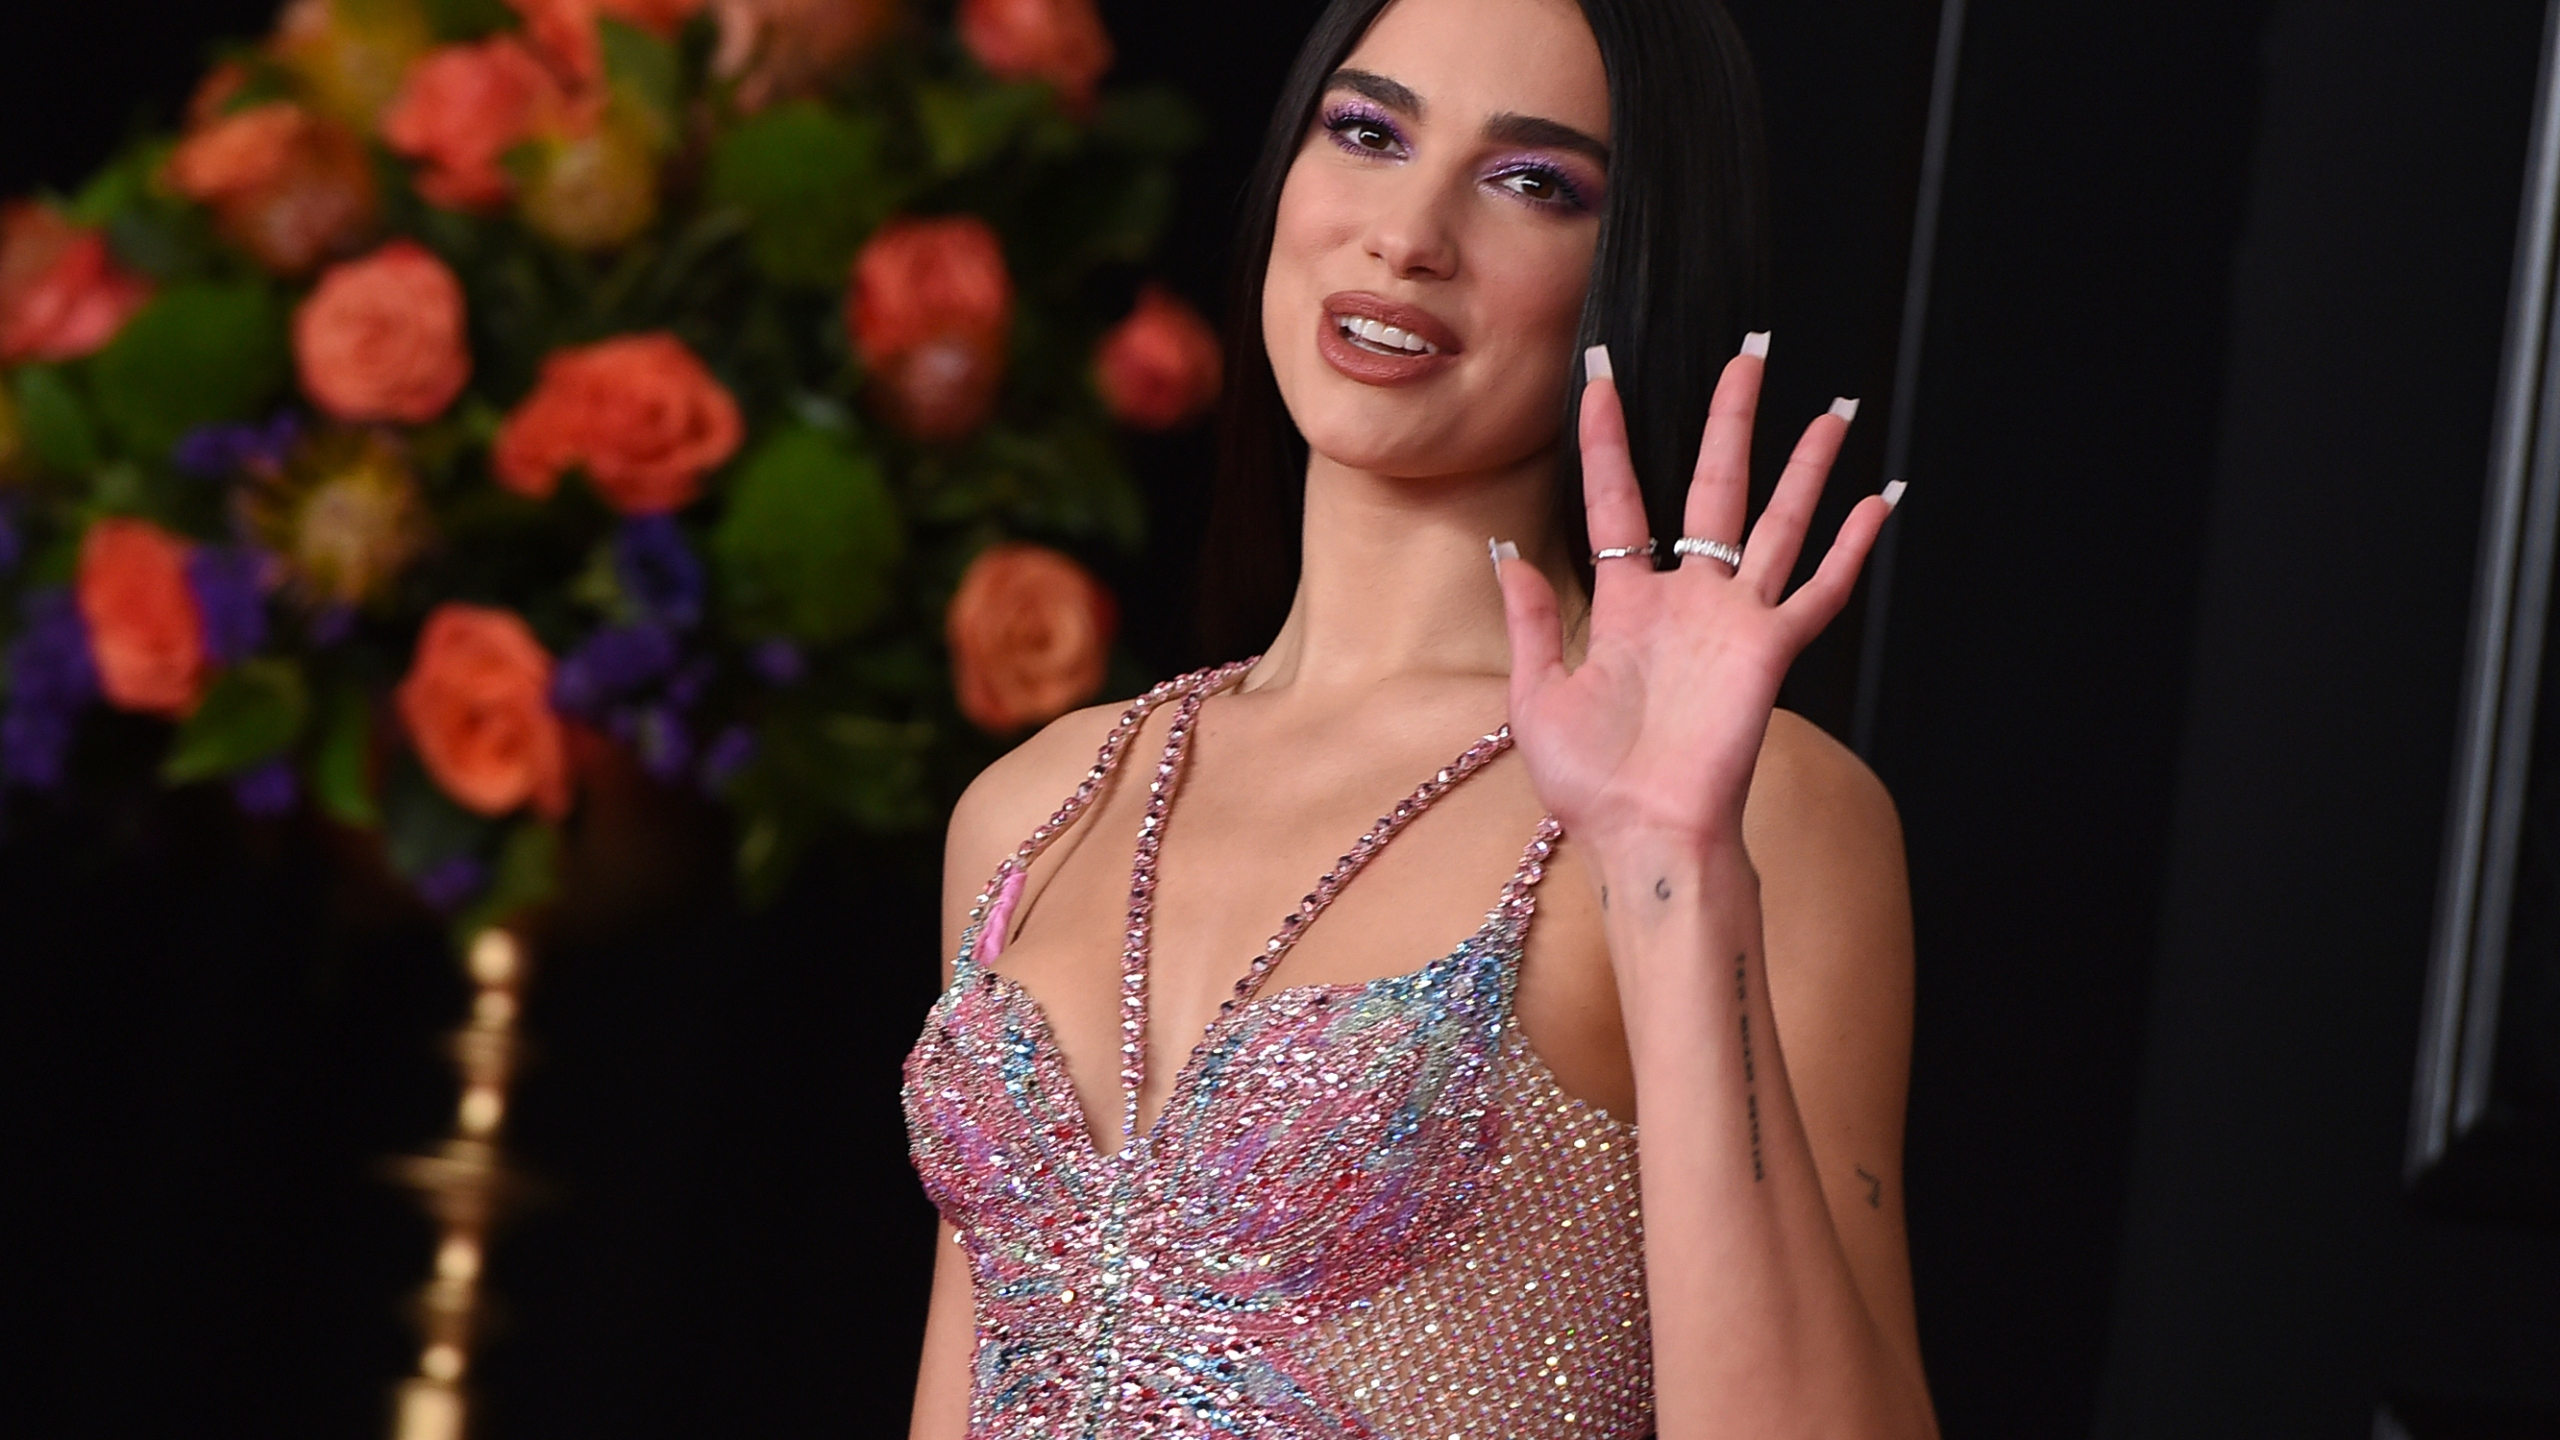 """In this Sunday, March 14, 2021 file photo, Dua Lipa arrives at the 63rd annual Grammy Awards at the Los Angeles Convention Center. Singer Dua Lipa is blasting the organization which paid for a full-page ad in The New York Times that called her antisemitic for her support of Palestinians, saying it used her name """"shamelessly"""" to """"advance their ugly campaign with falsehoods and blatant misrepresentations."""" Lipa took to Twitter on Saturday, May 22, 2021 to """"reject the false and appalling allegations"""" and said the World Values Network twisted what she stands for. """"I stand in solidarity with all oppressed people and reject all forms of racism,"""" she wrote. (Photo by Jordan Strauss/Invision/AP, File)"""